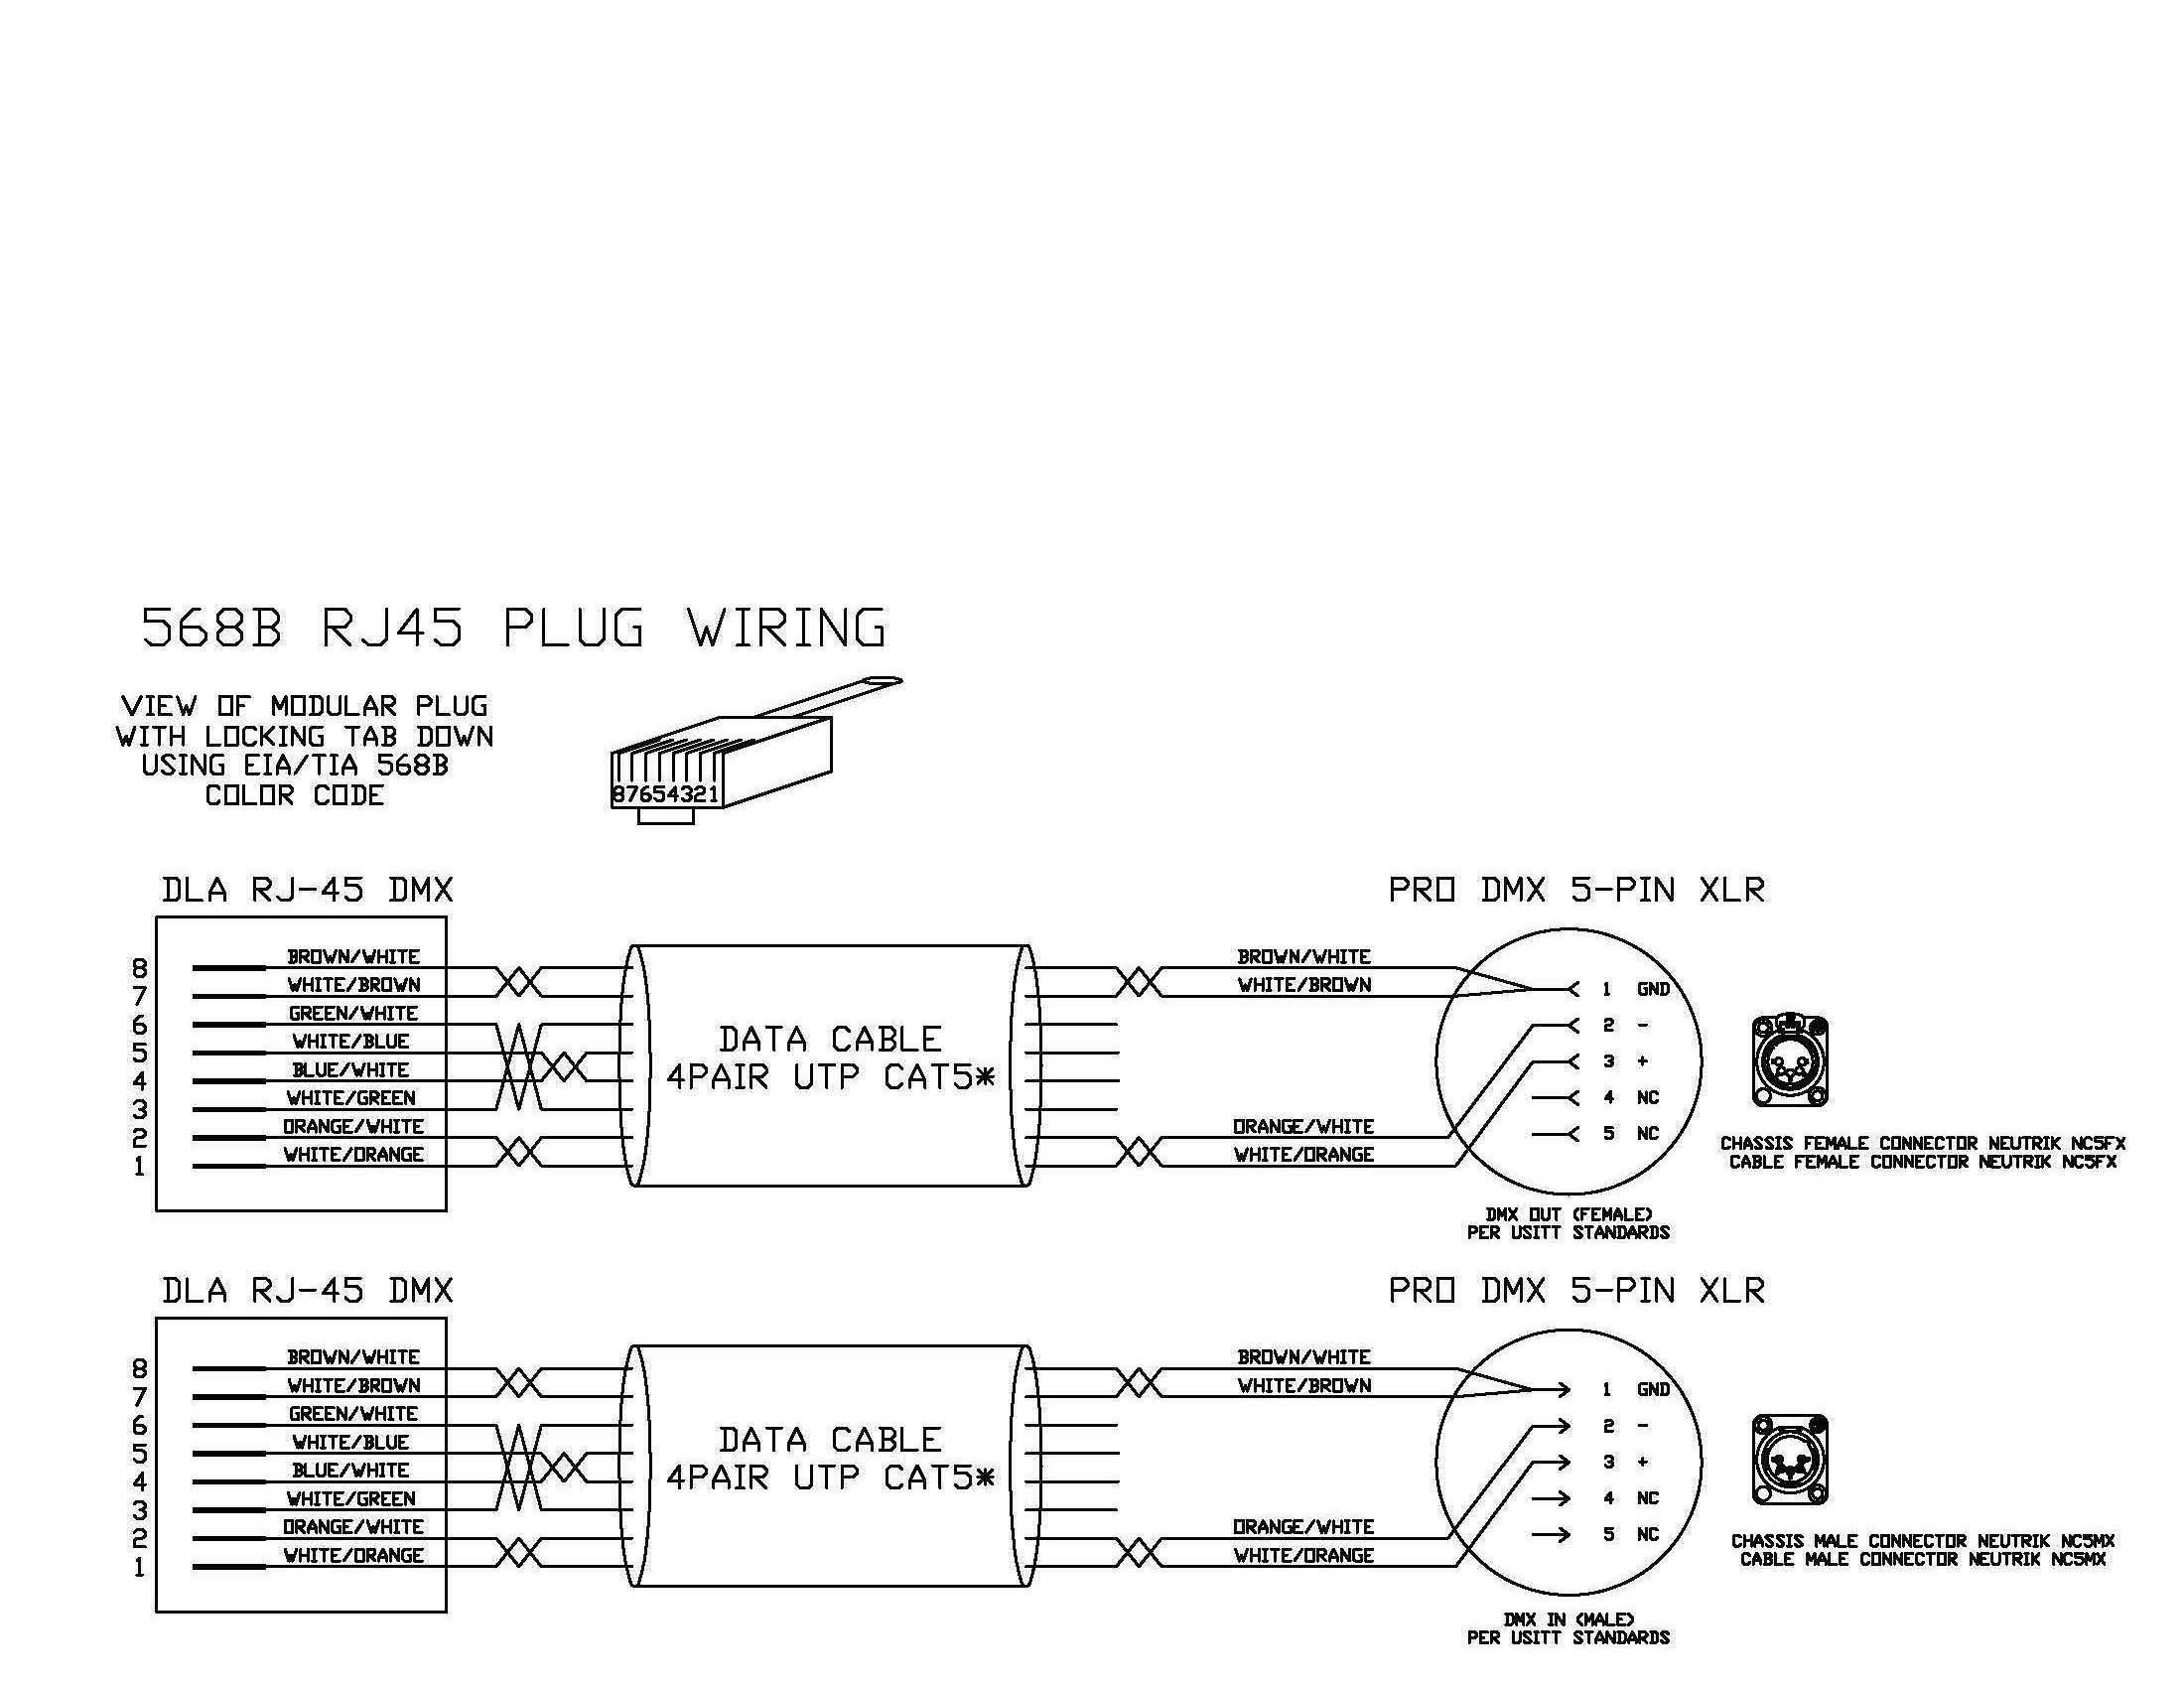 e975ddb6a839e630c21b81db05ca4fa6 xlr to rj45 wiring diagram xlr electrical wiring diagrams xlr wiring color codes at honlapkeszites.co